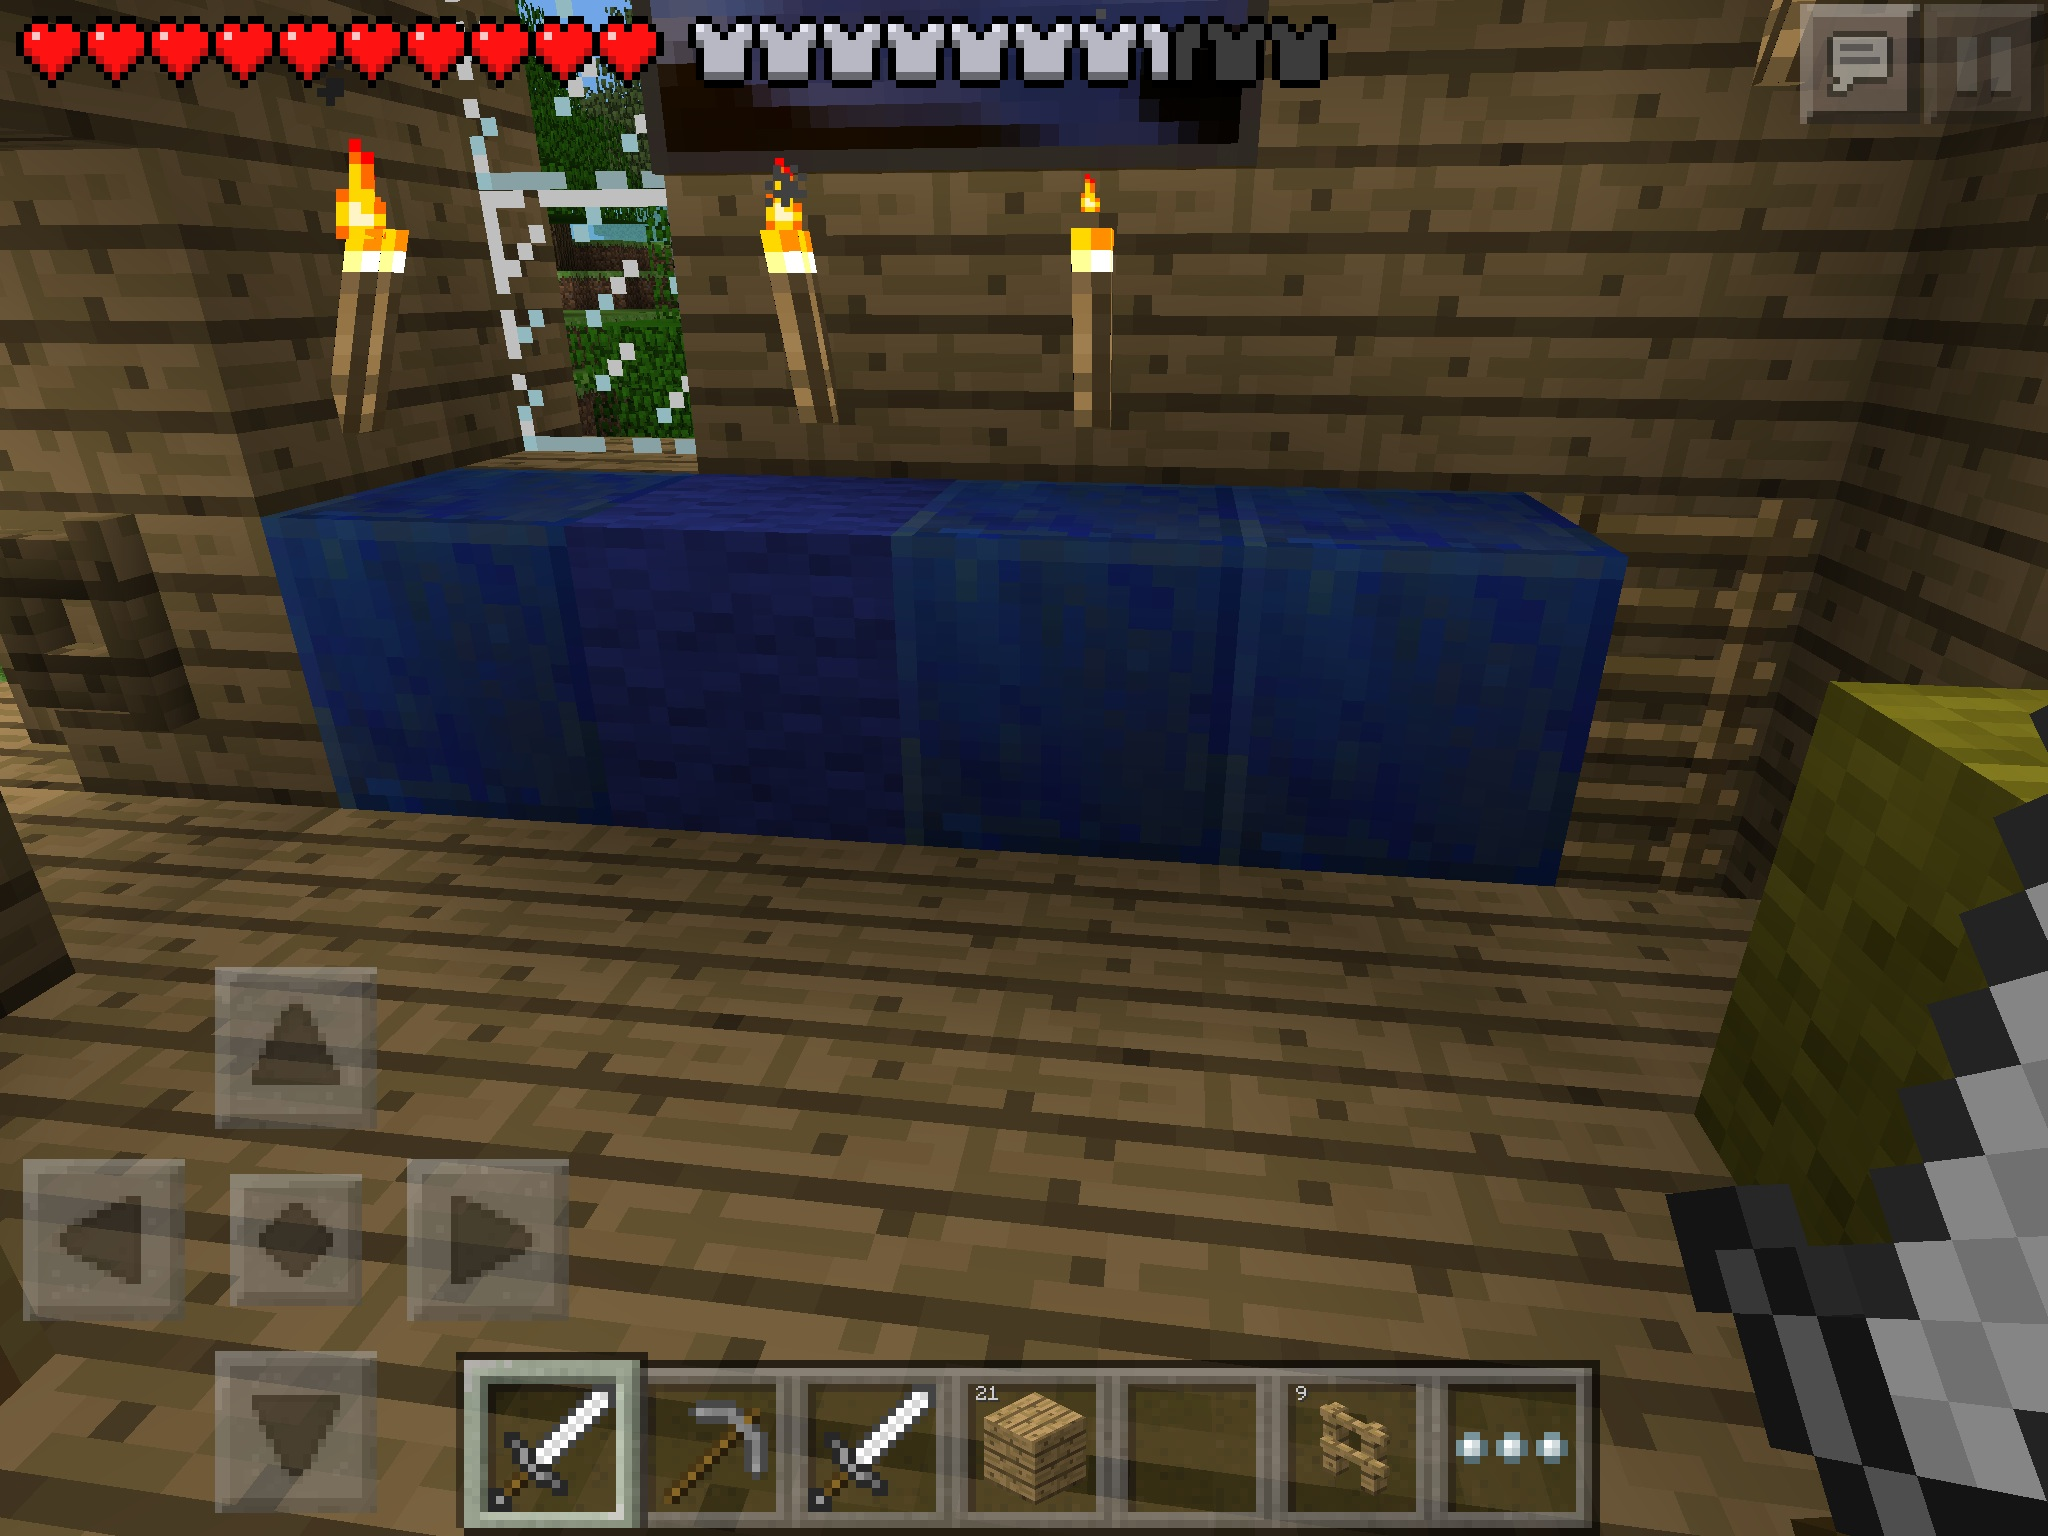 Minecraft pocket edition images my sister found a bunch of lapis minecraft pocket edition images my sister found a bunch of lapis lazuli hd wallpaper and background photos voltagebd Images